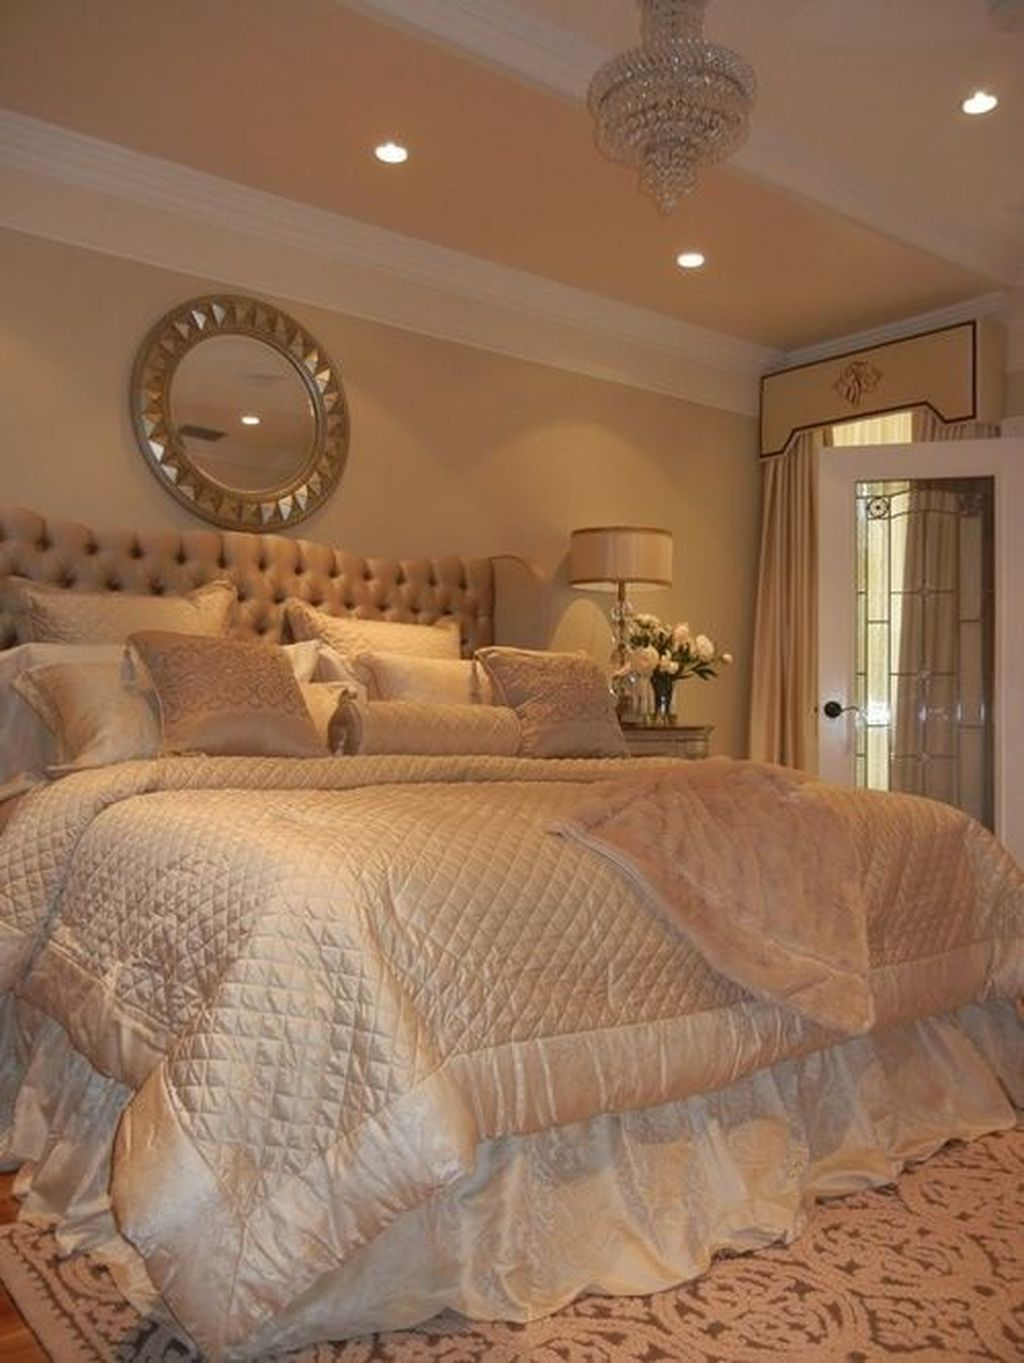 Elegant Romantic Bedrooms: 50 Make Your Bedroom More Romantic With These Romantic